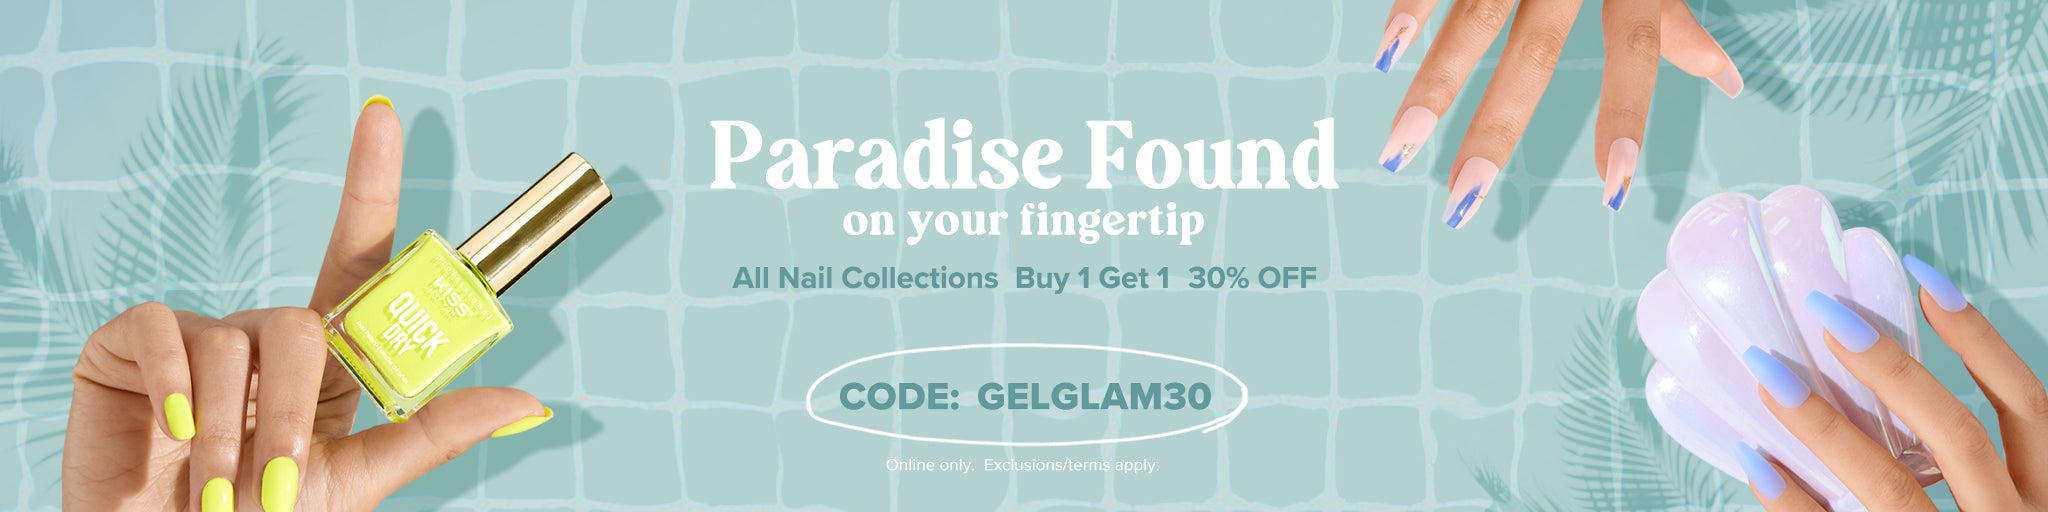 Buy 1, Get 1 30% OFF Nail Collection, Use Code: GELGLAM30